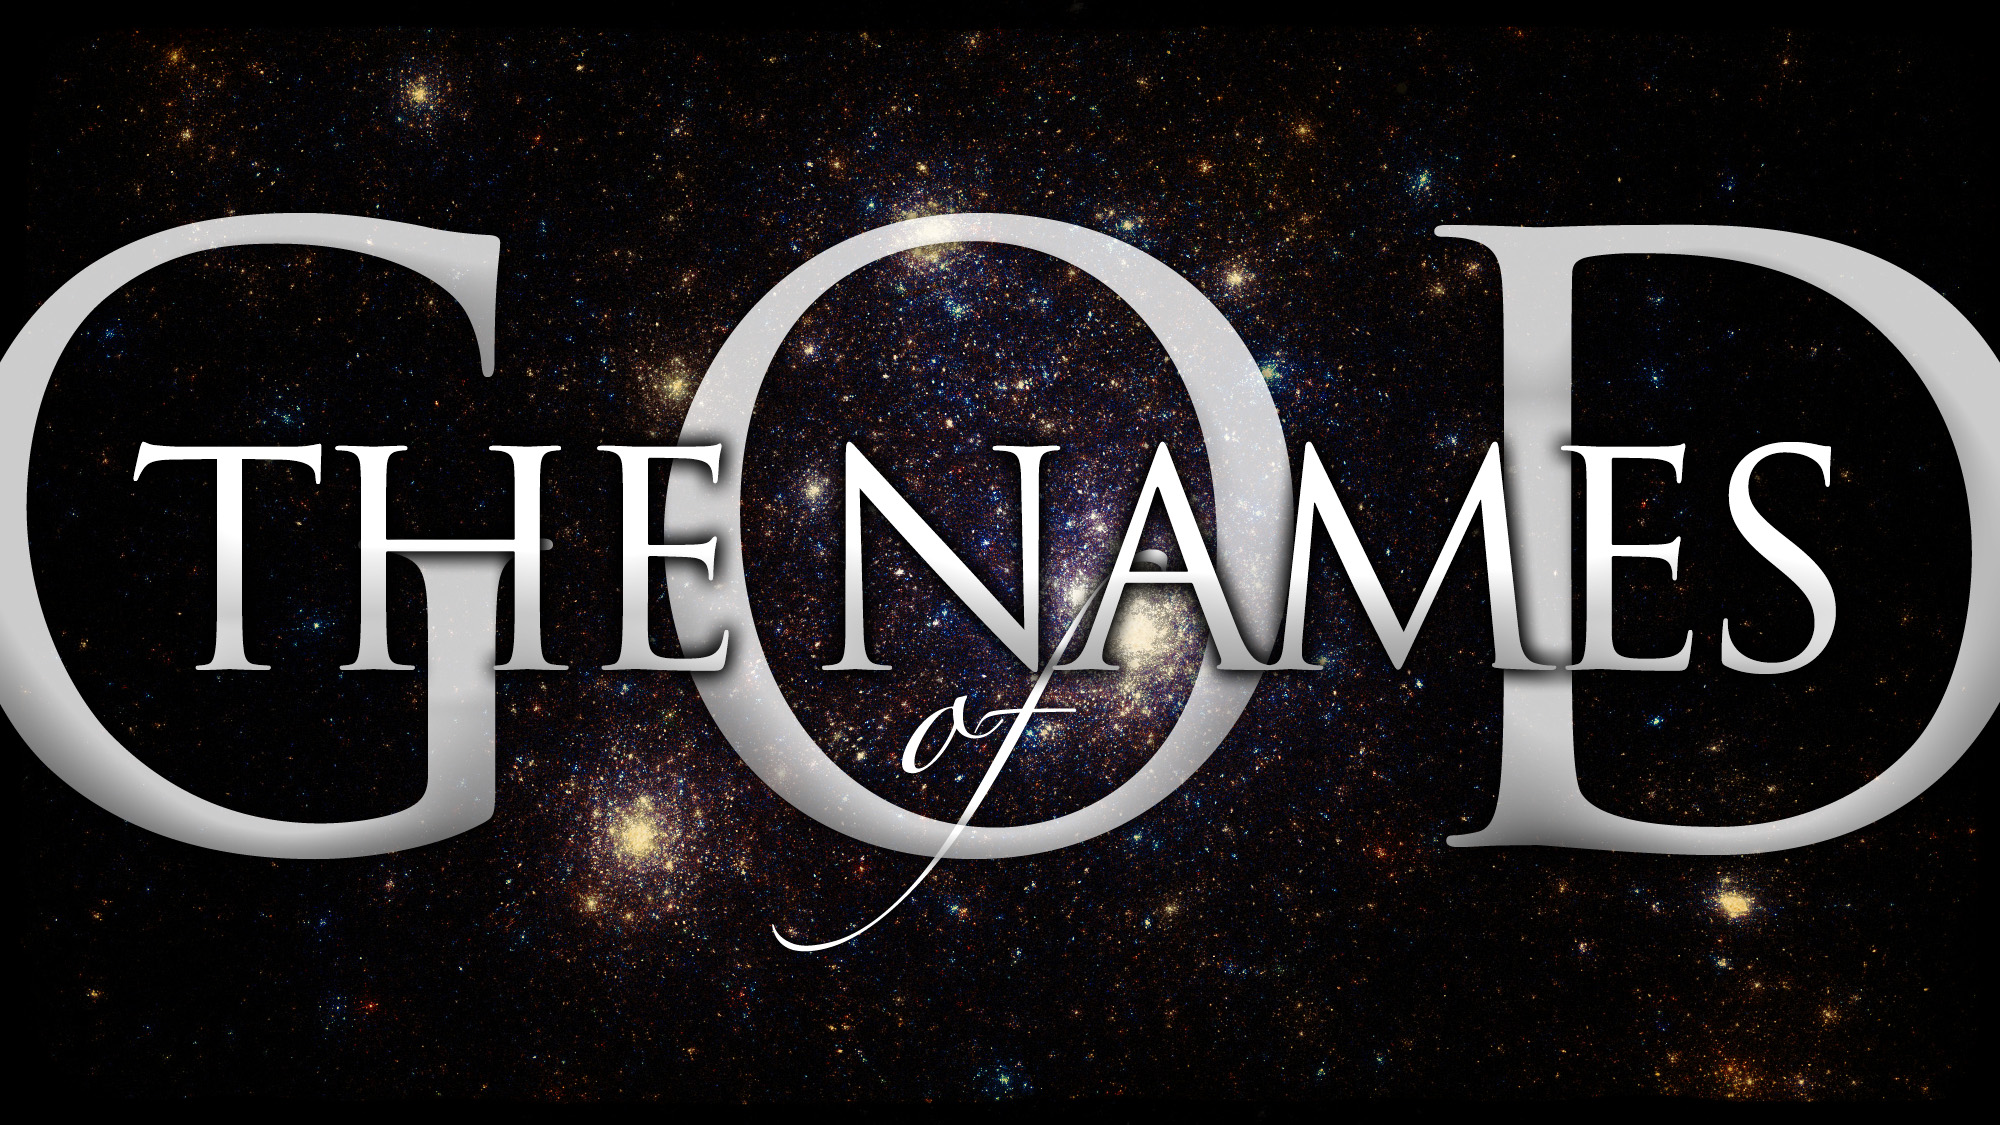 names of god, the_wide_t